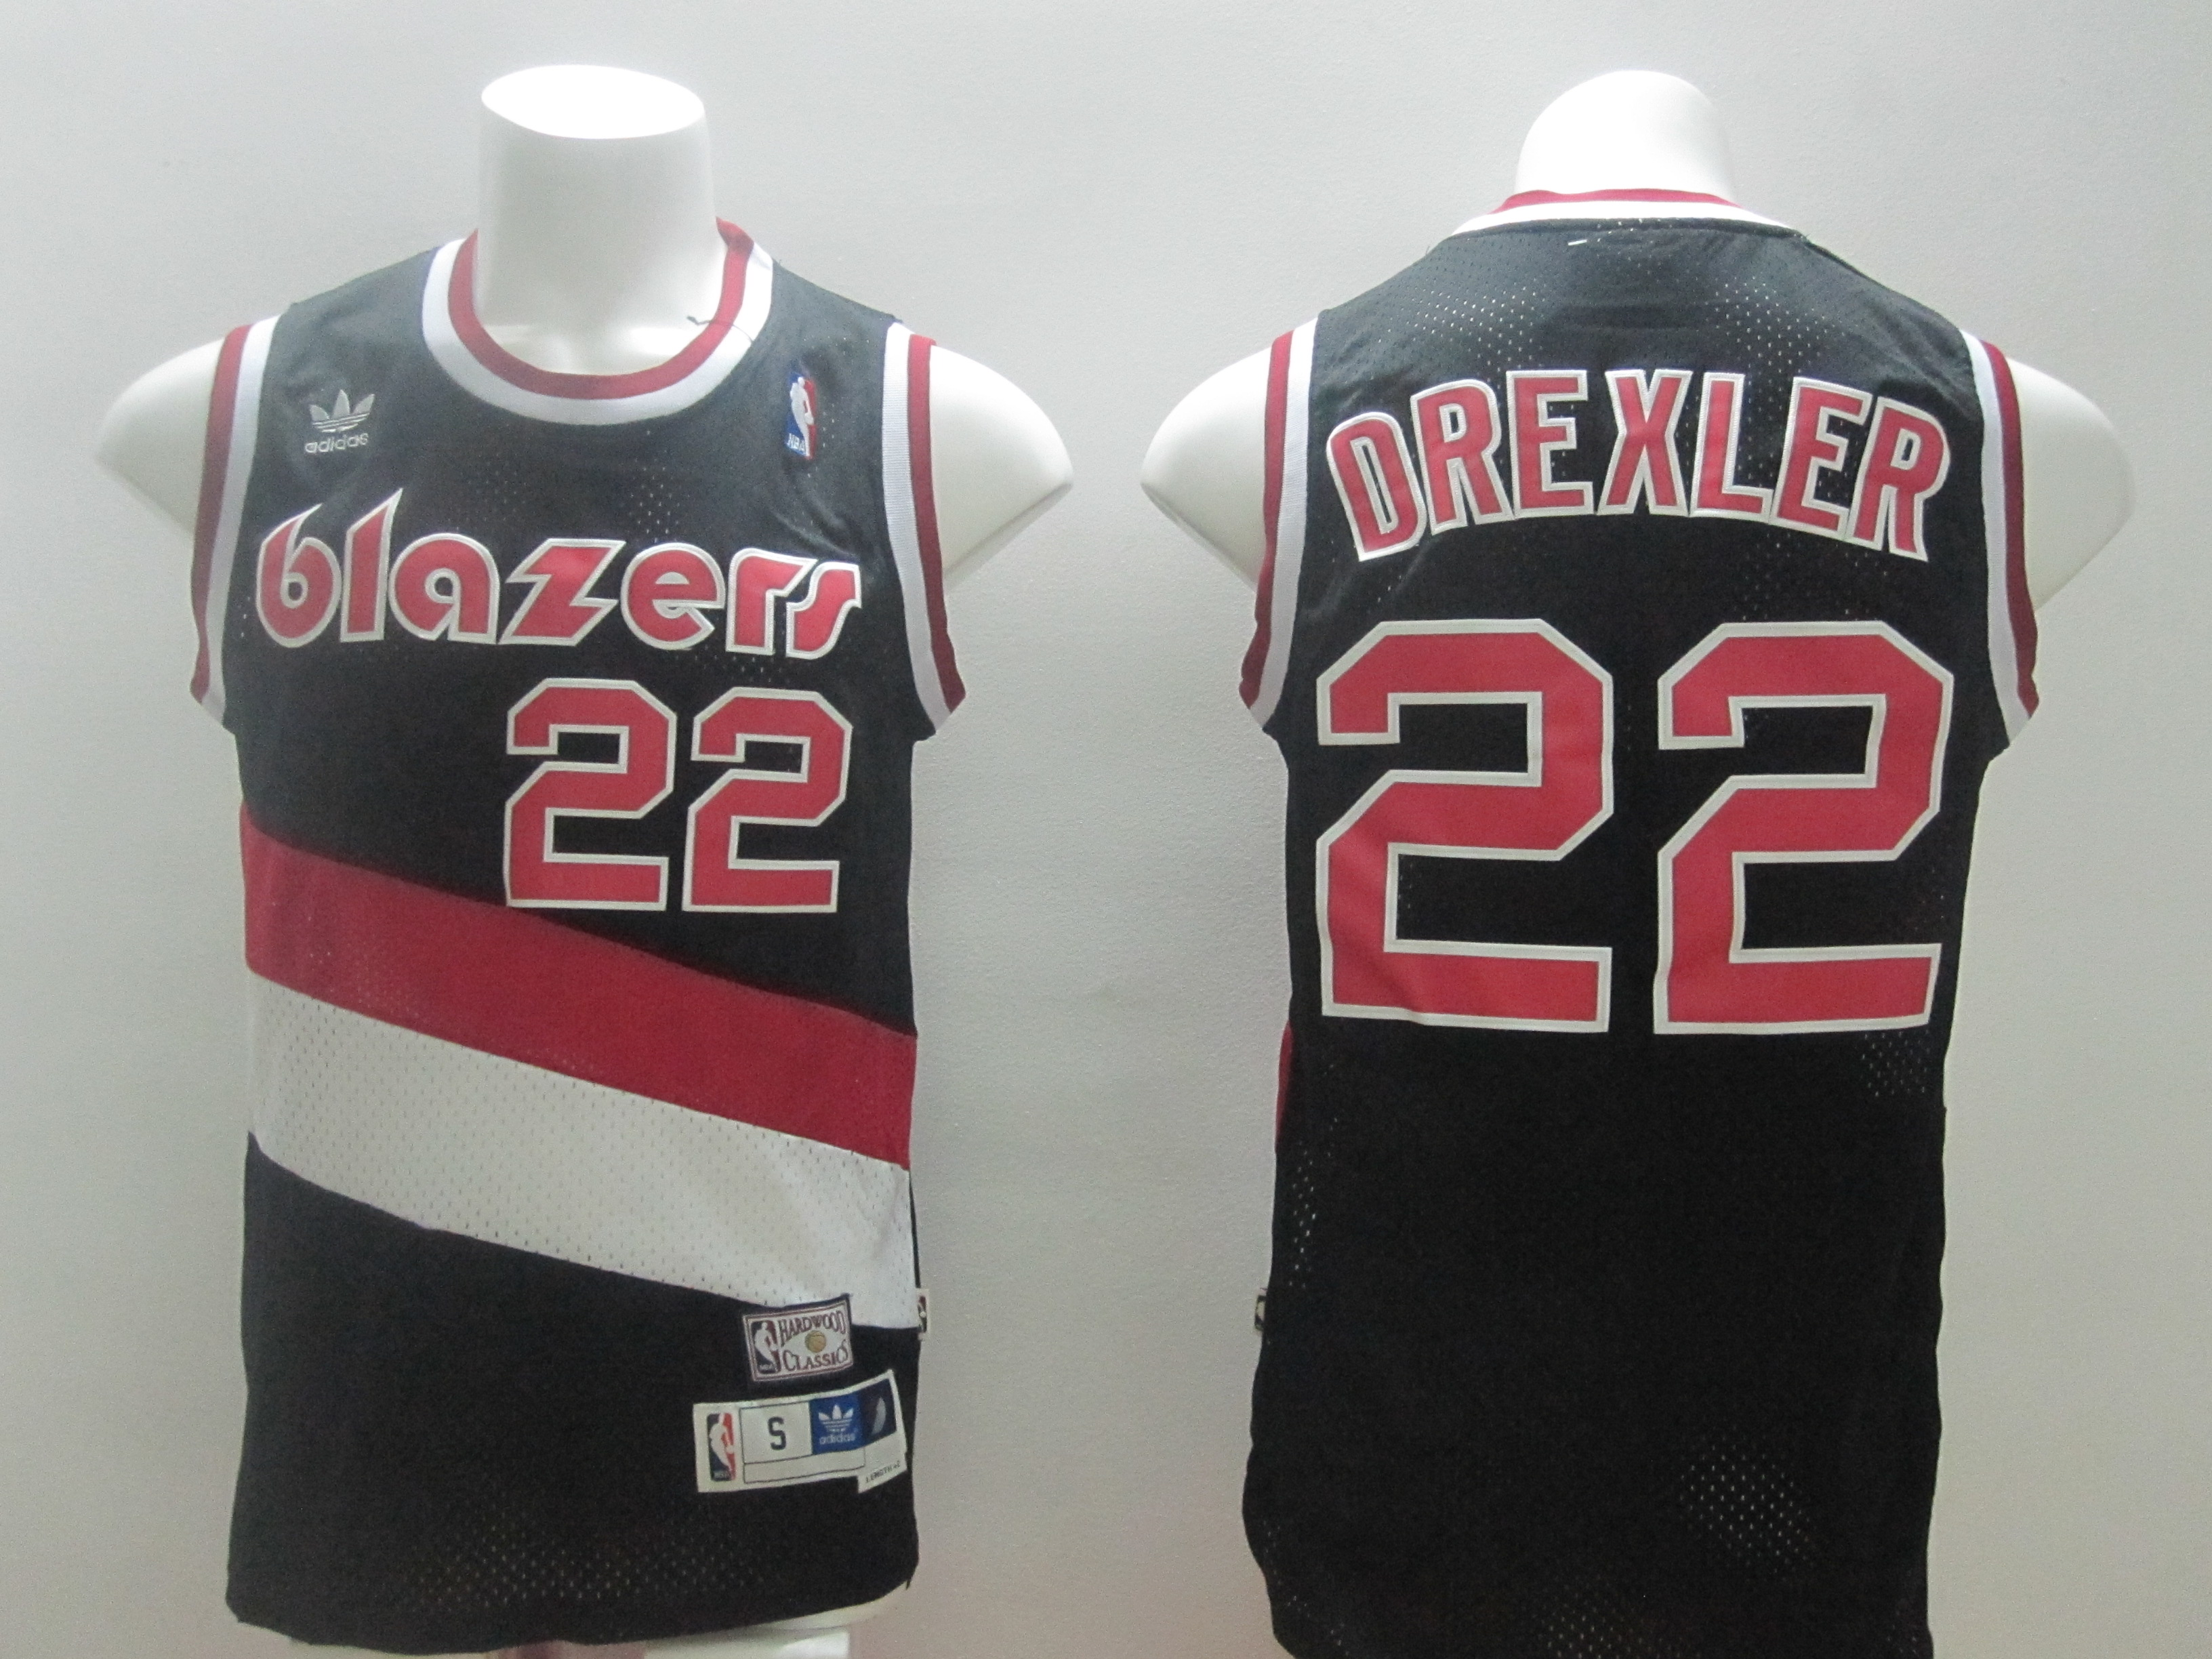 2014 NBA Portland Trail Blazers 22 Drexler black Swingman jerseys